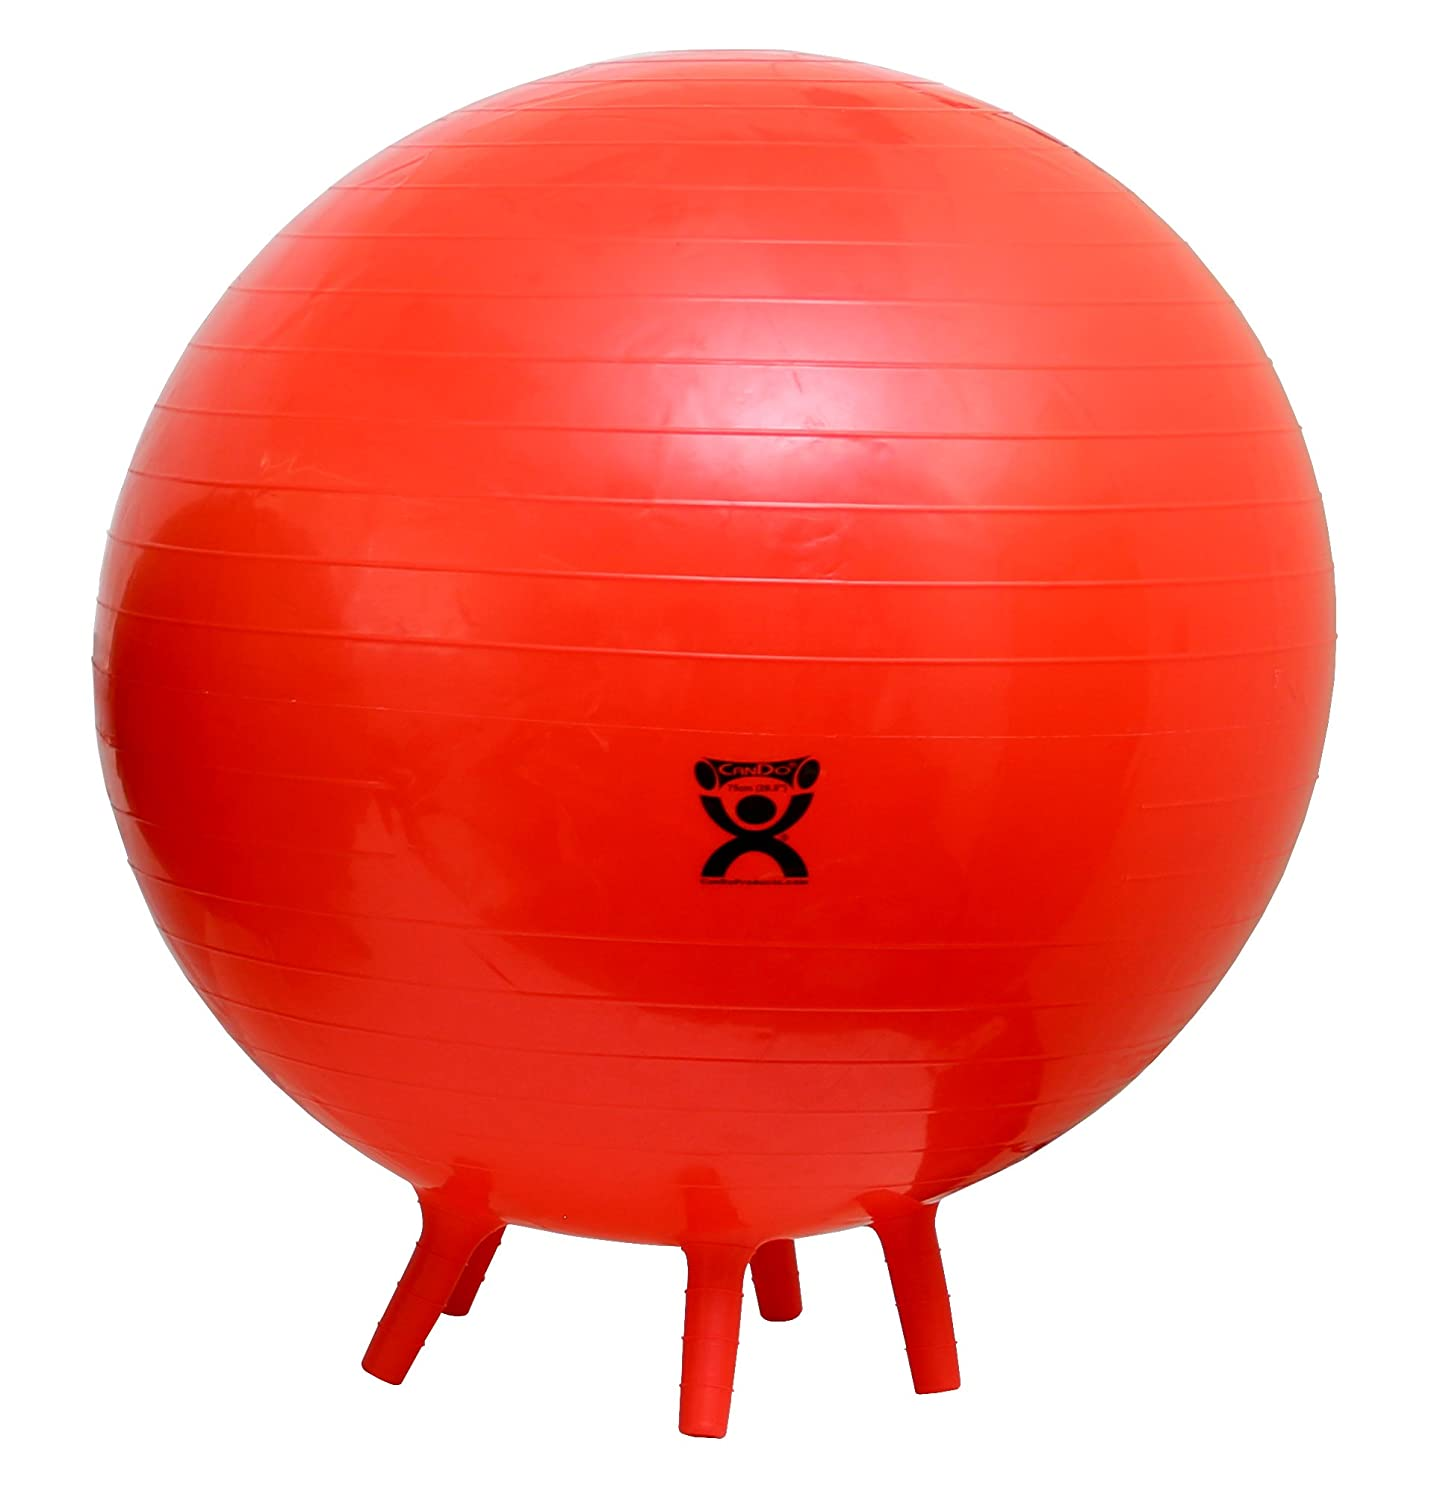 "CanDo-30-1894 Non-Slip Inflatable Exercise Ball with Stability Feet for Exercise, Workout, Core Training, Stability, Yoga, Pilates and Balance Training in Gym, Office, Home or Classroom. Red, 30"" (75 cm)"